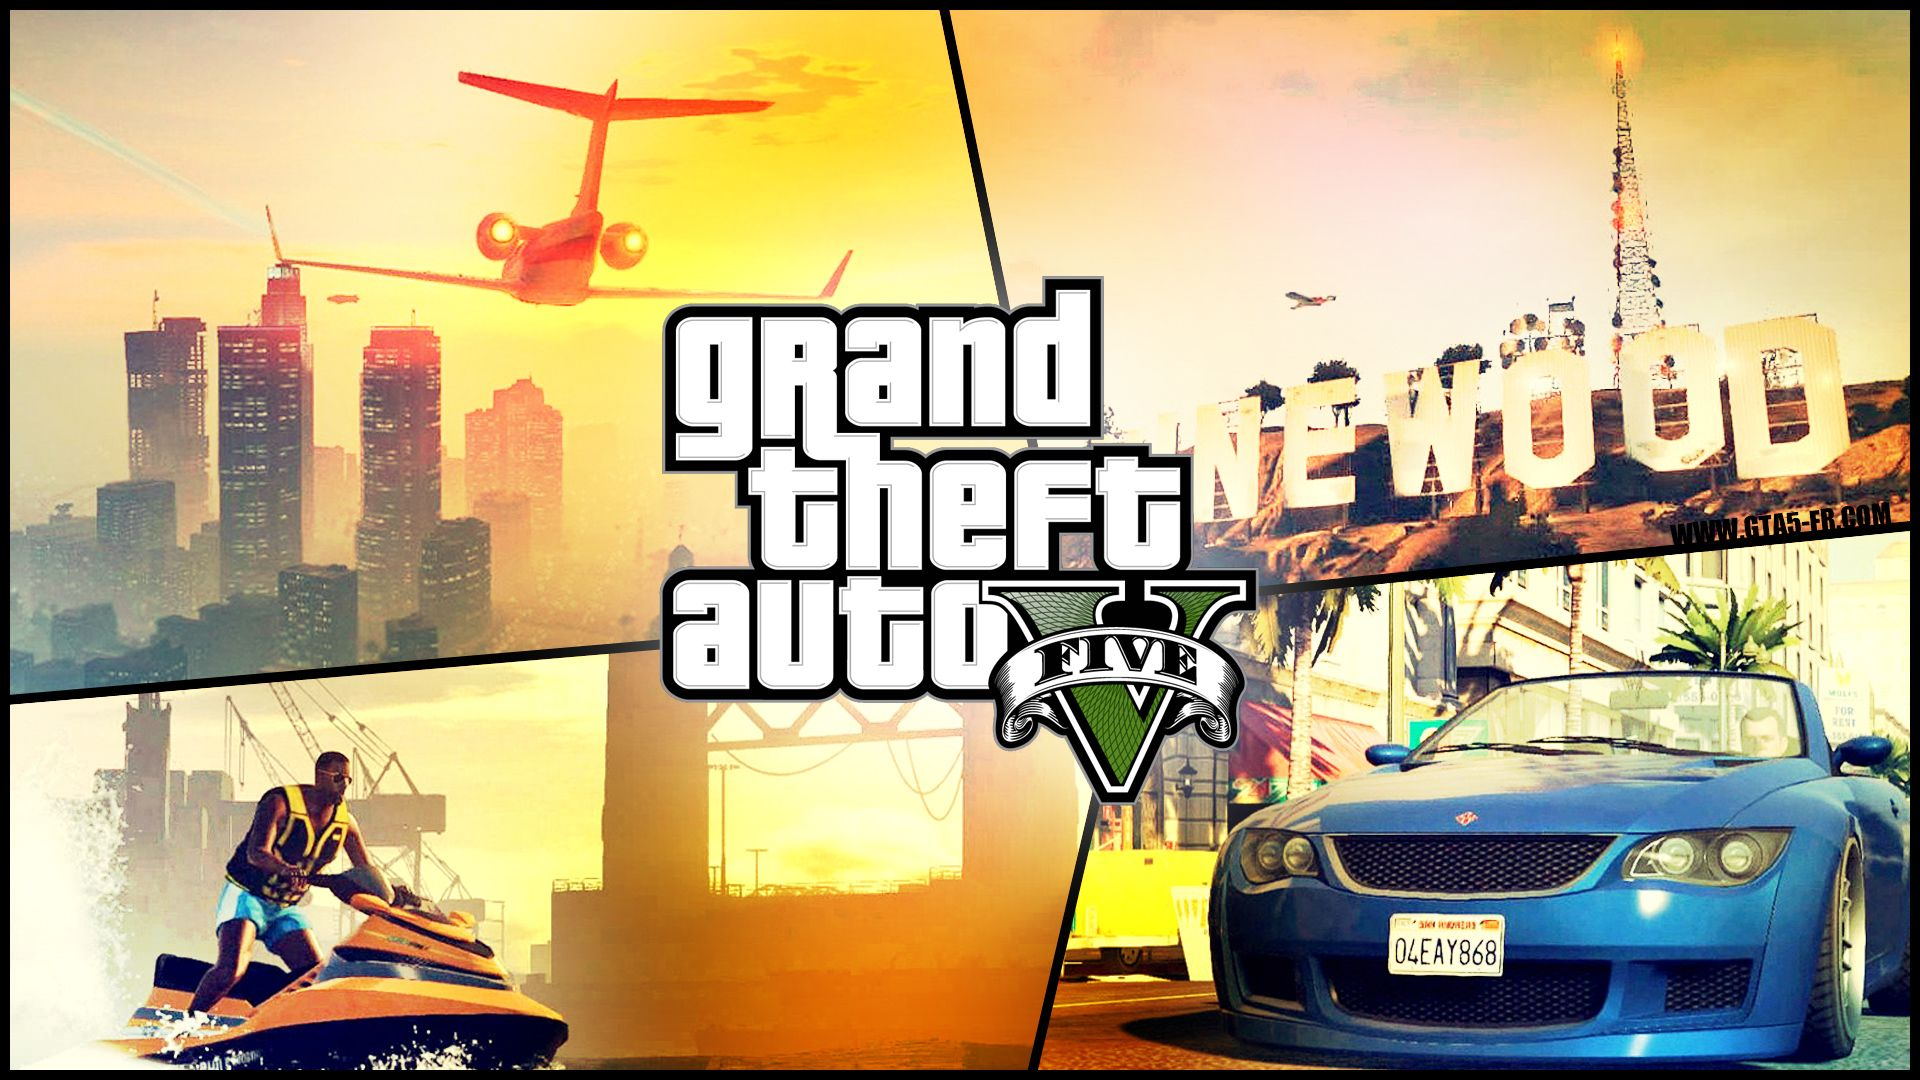 Pin by As'adul Ibad on My Style | Gta v cheats, Gta 5 games